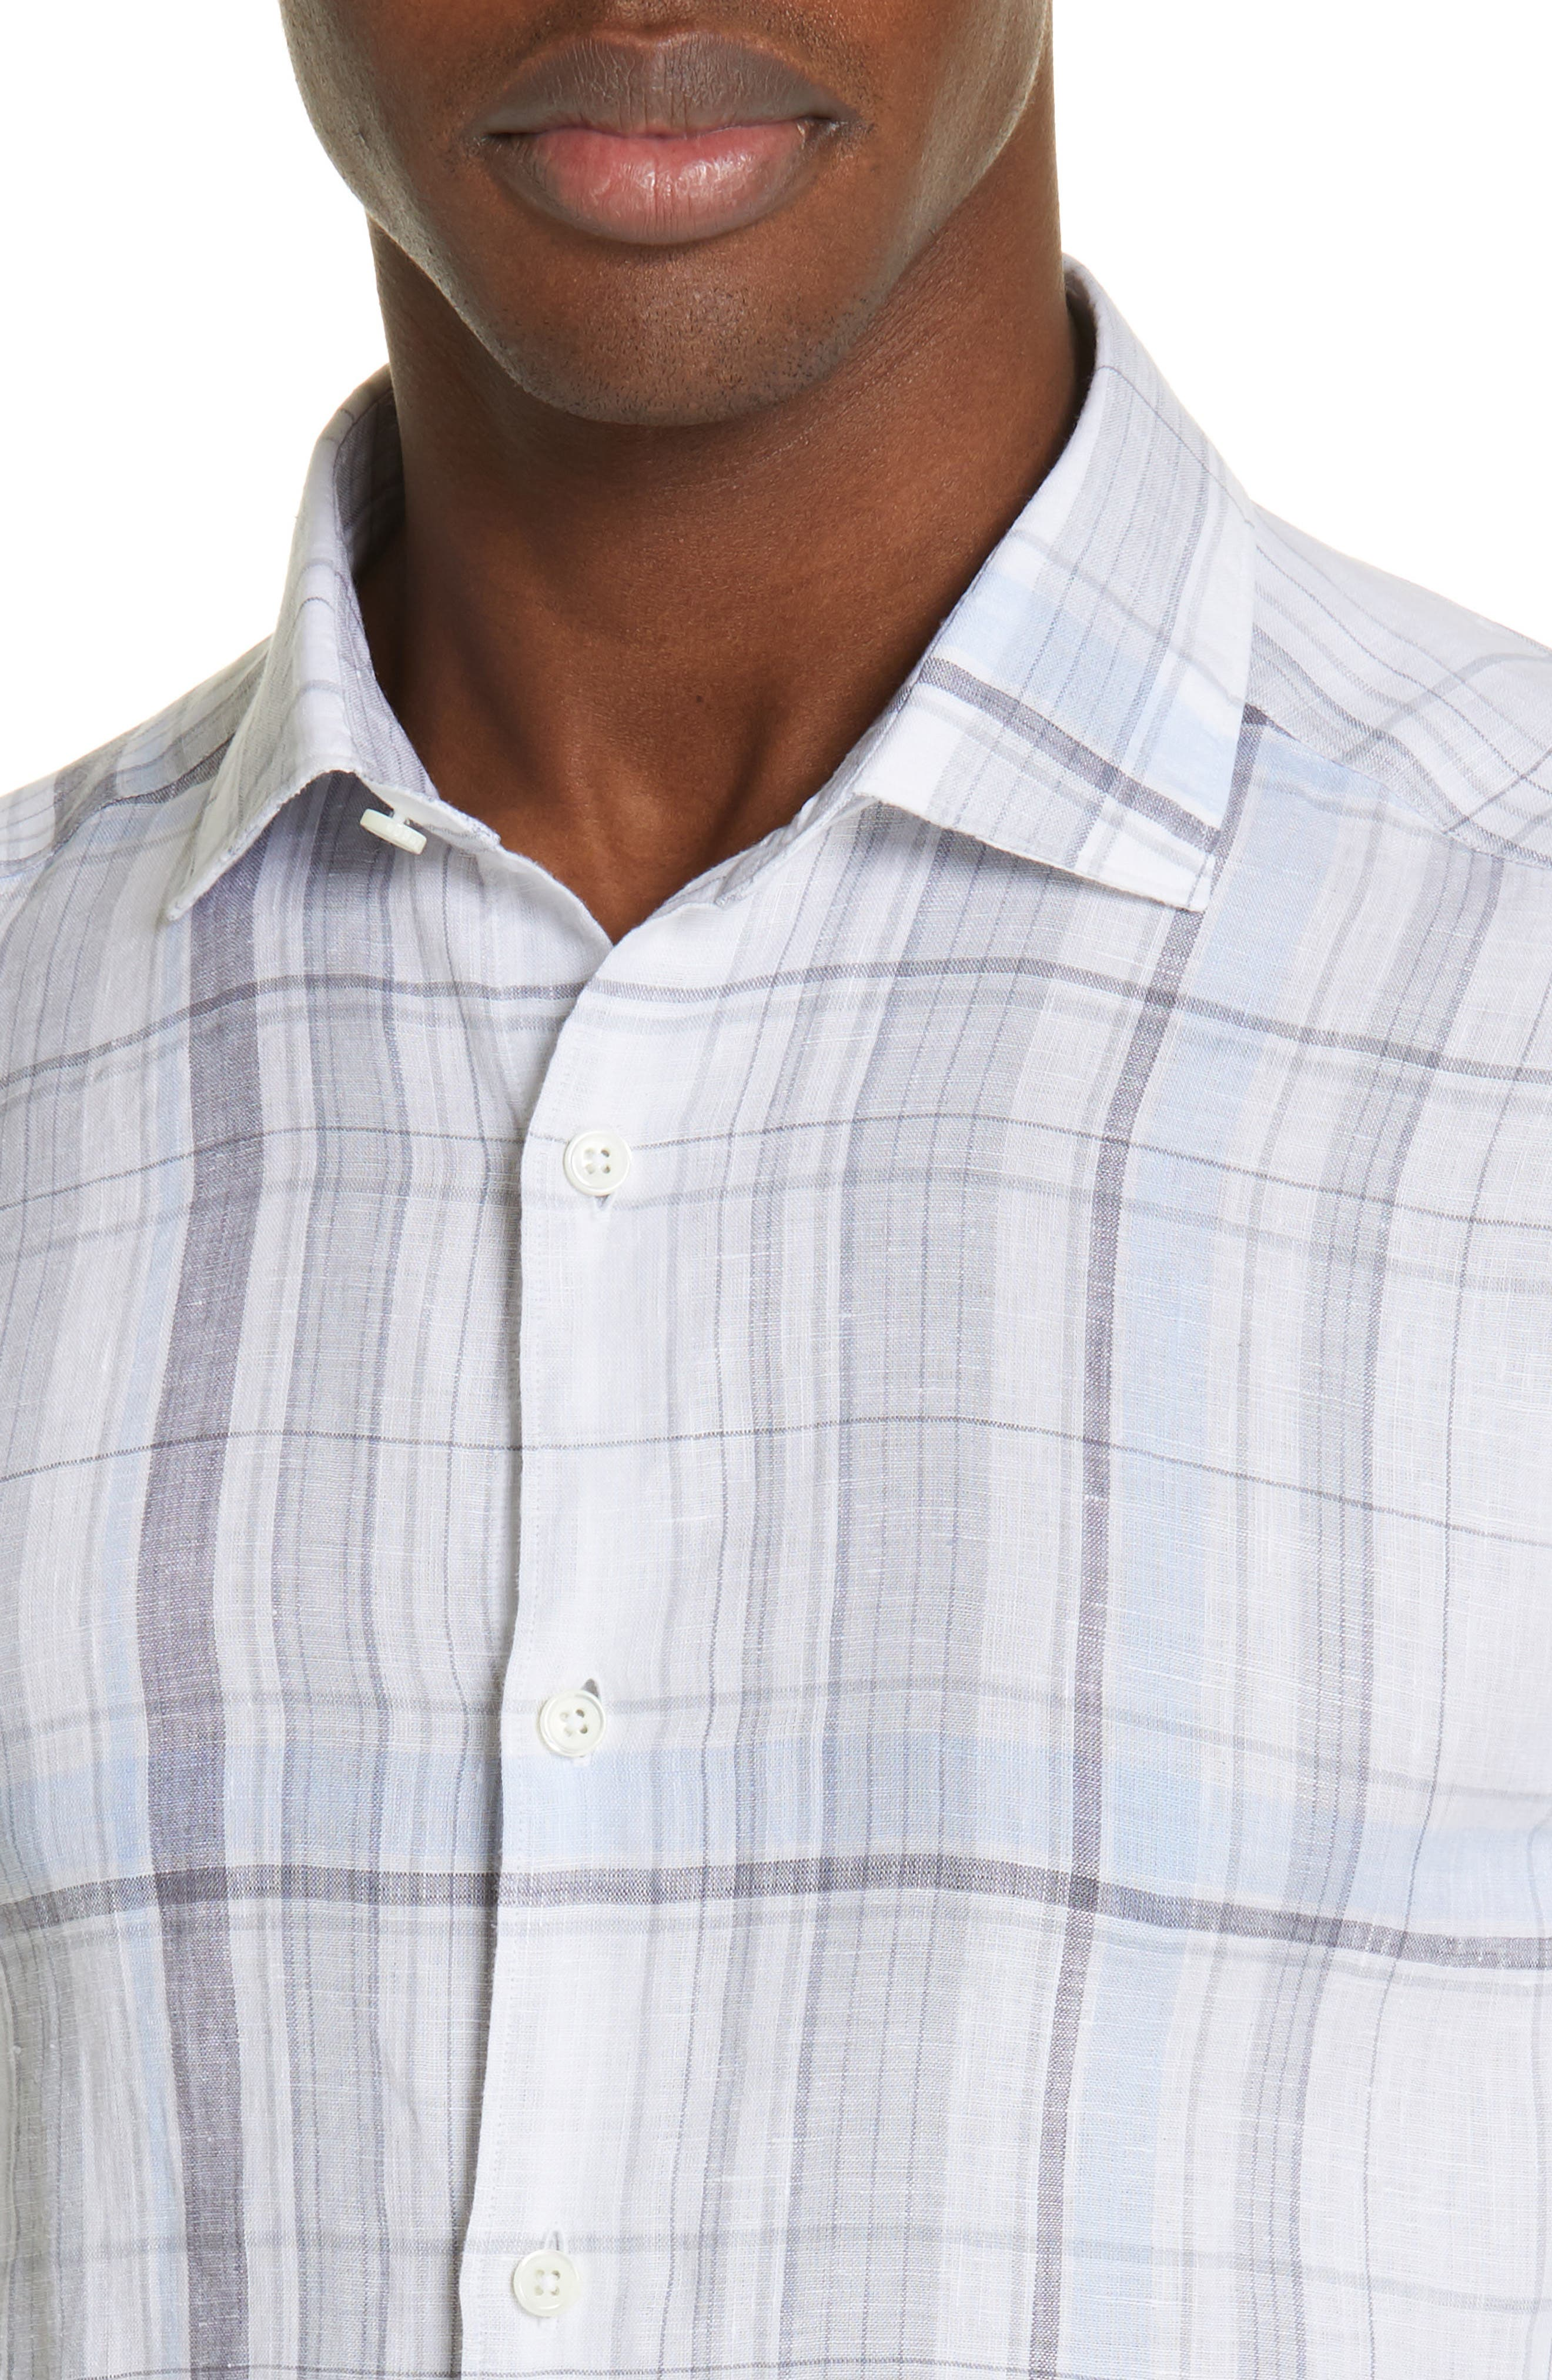 ERMENEGILDO ZEGNA, Regular Fit Plaid Linen Sport Shirt, Alternate thumbnail 2, color, BLUE